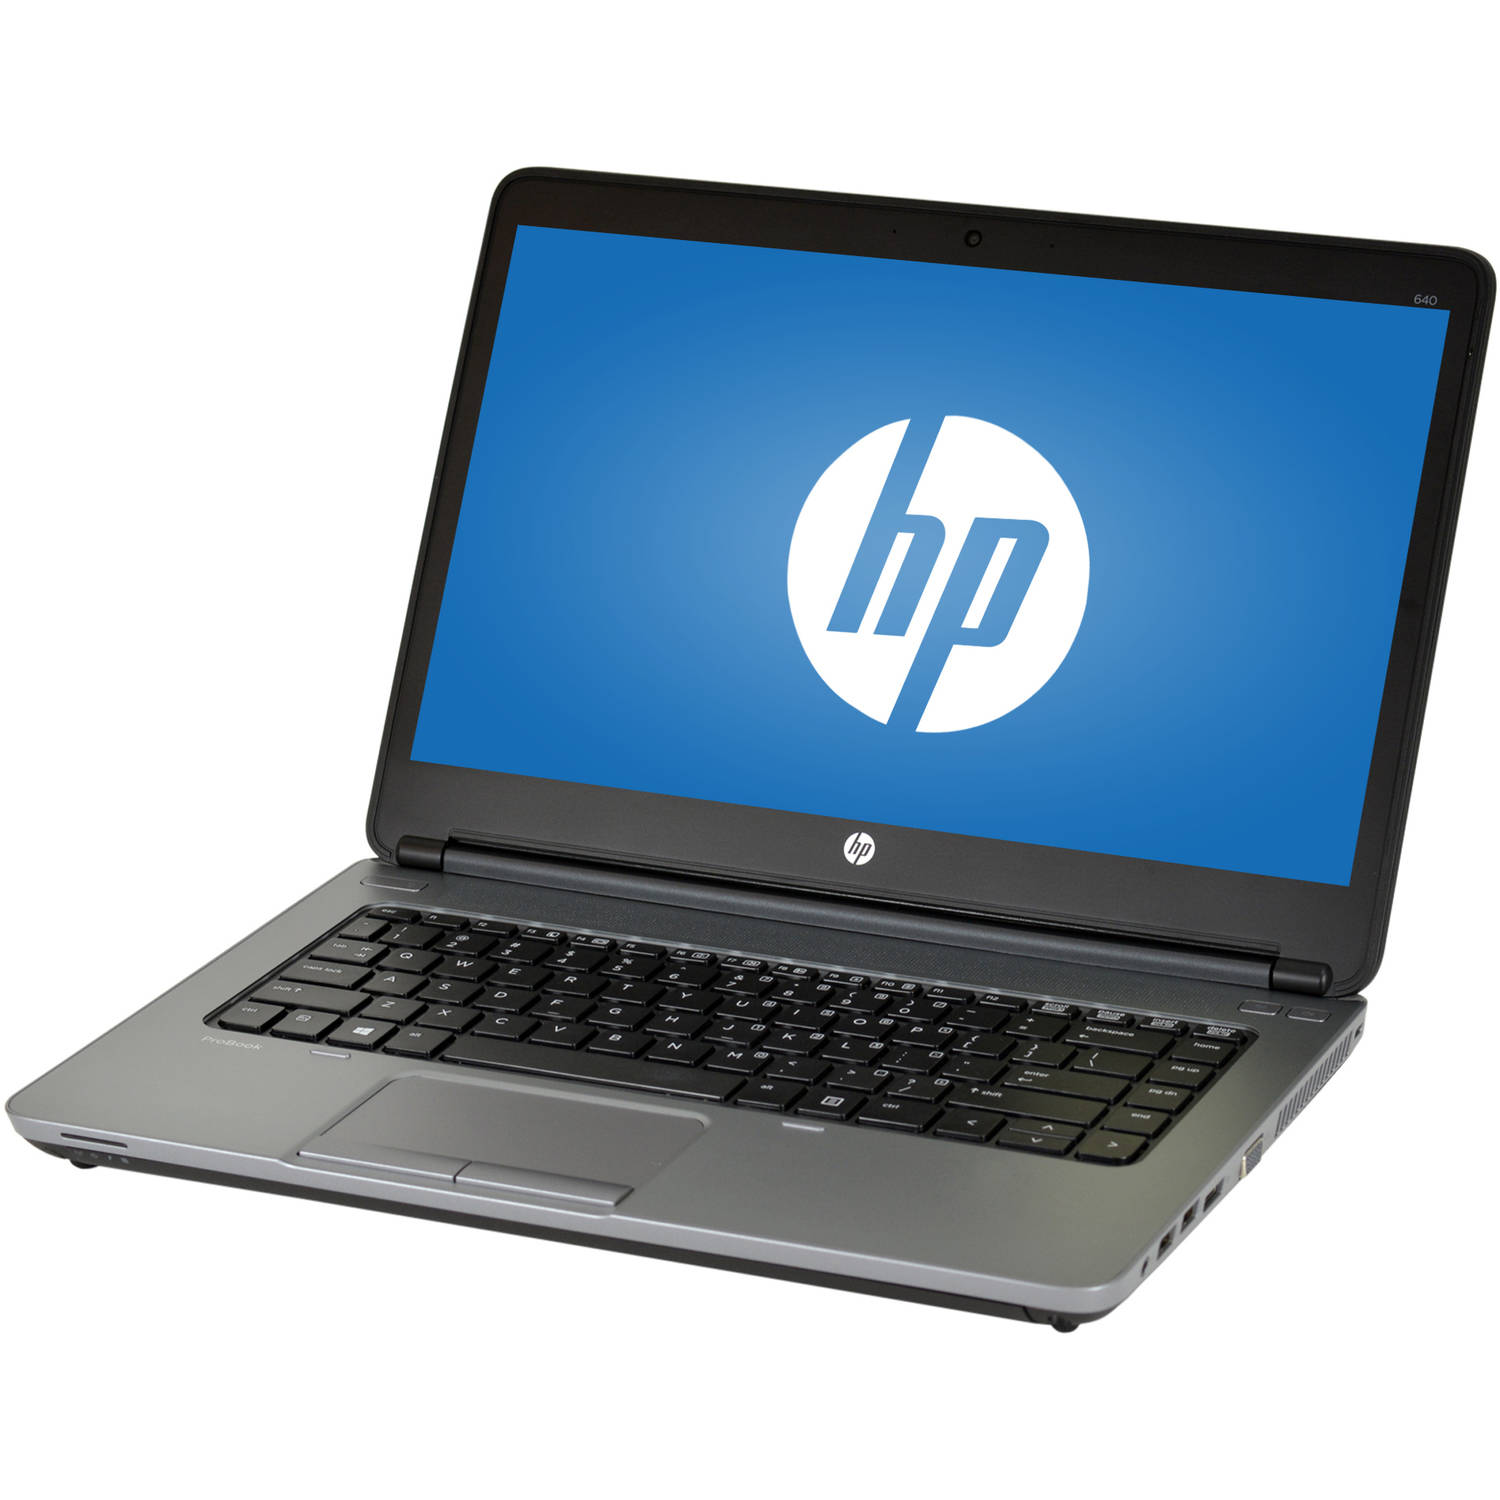 "Refurbished HP ProBook 640 G1 14"" Laptop, Windows 10 Pro, Intel Core i5-4300M Processor, 8GB RAM, 240GB Solid State Drive"